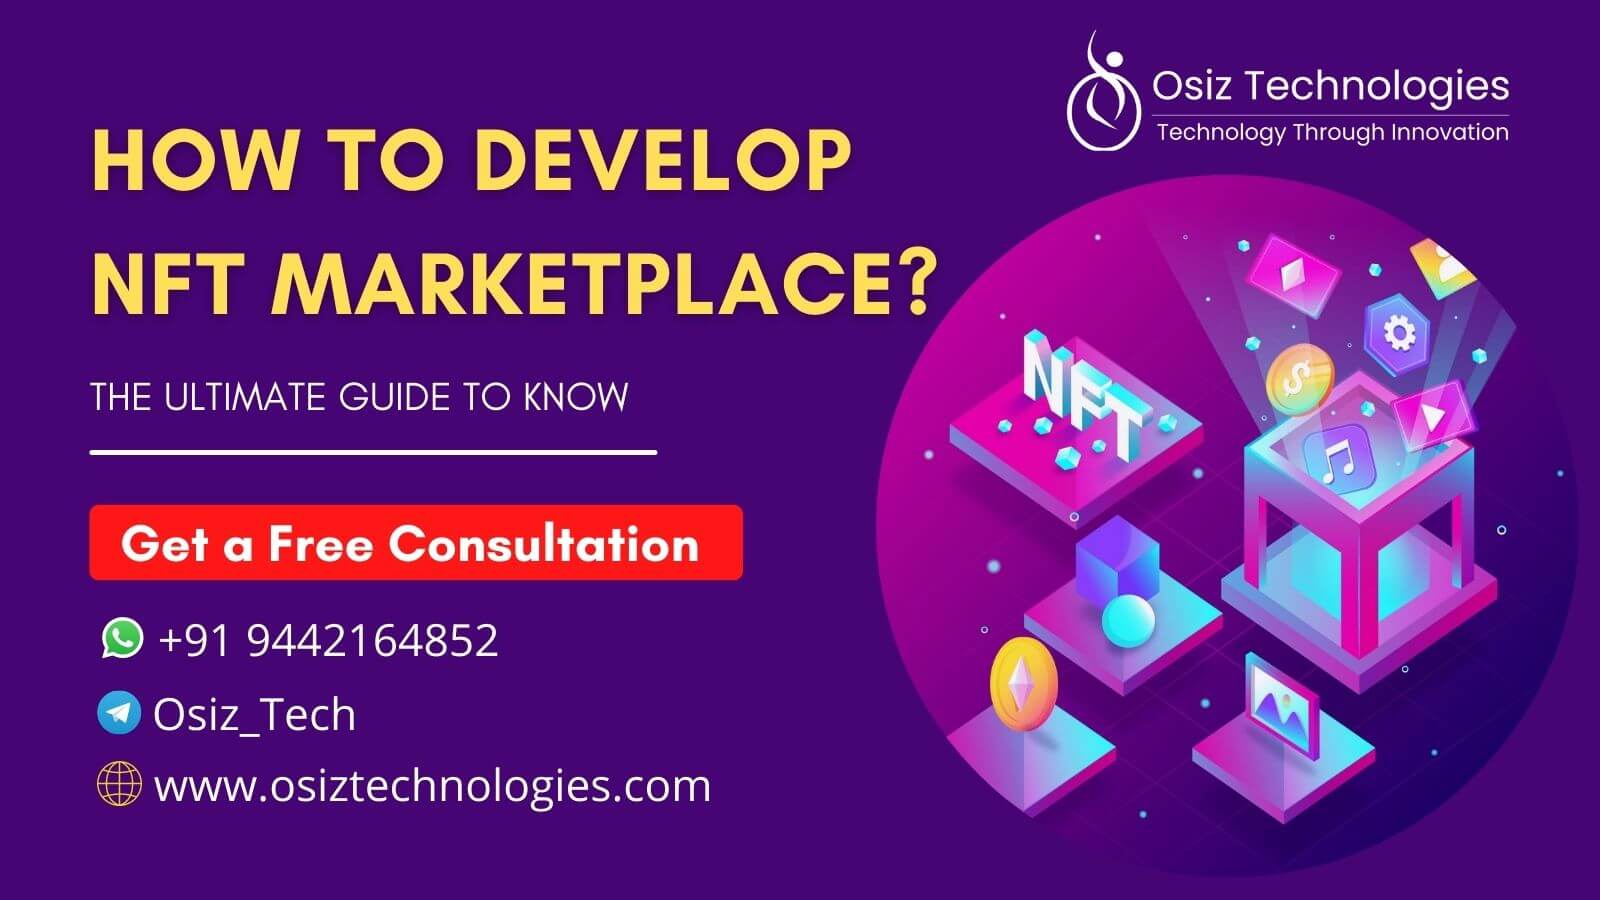 How to Develop an NFT Marketplace? - The Ultimate Guide 2021